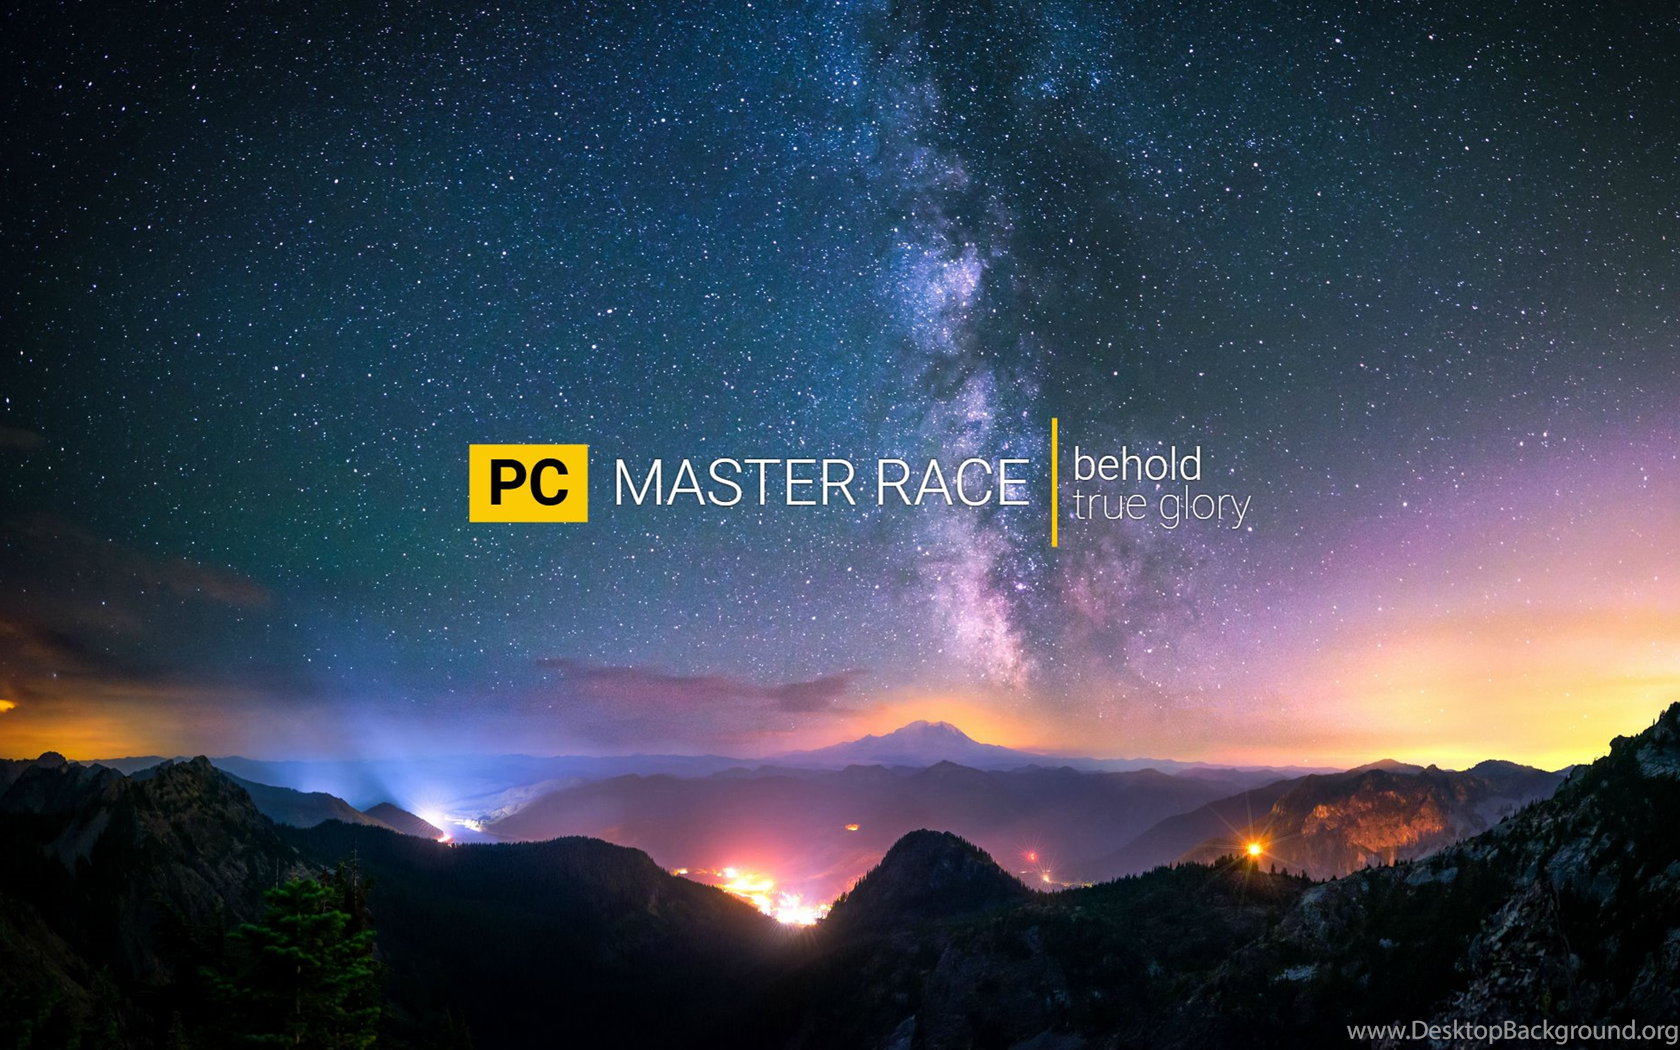 Pc Updated Wallpapers 1080p And 1440p Via R Pcmasterrace